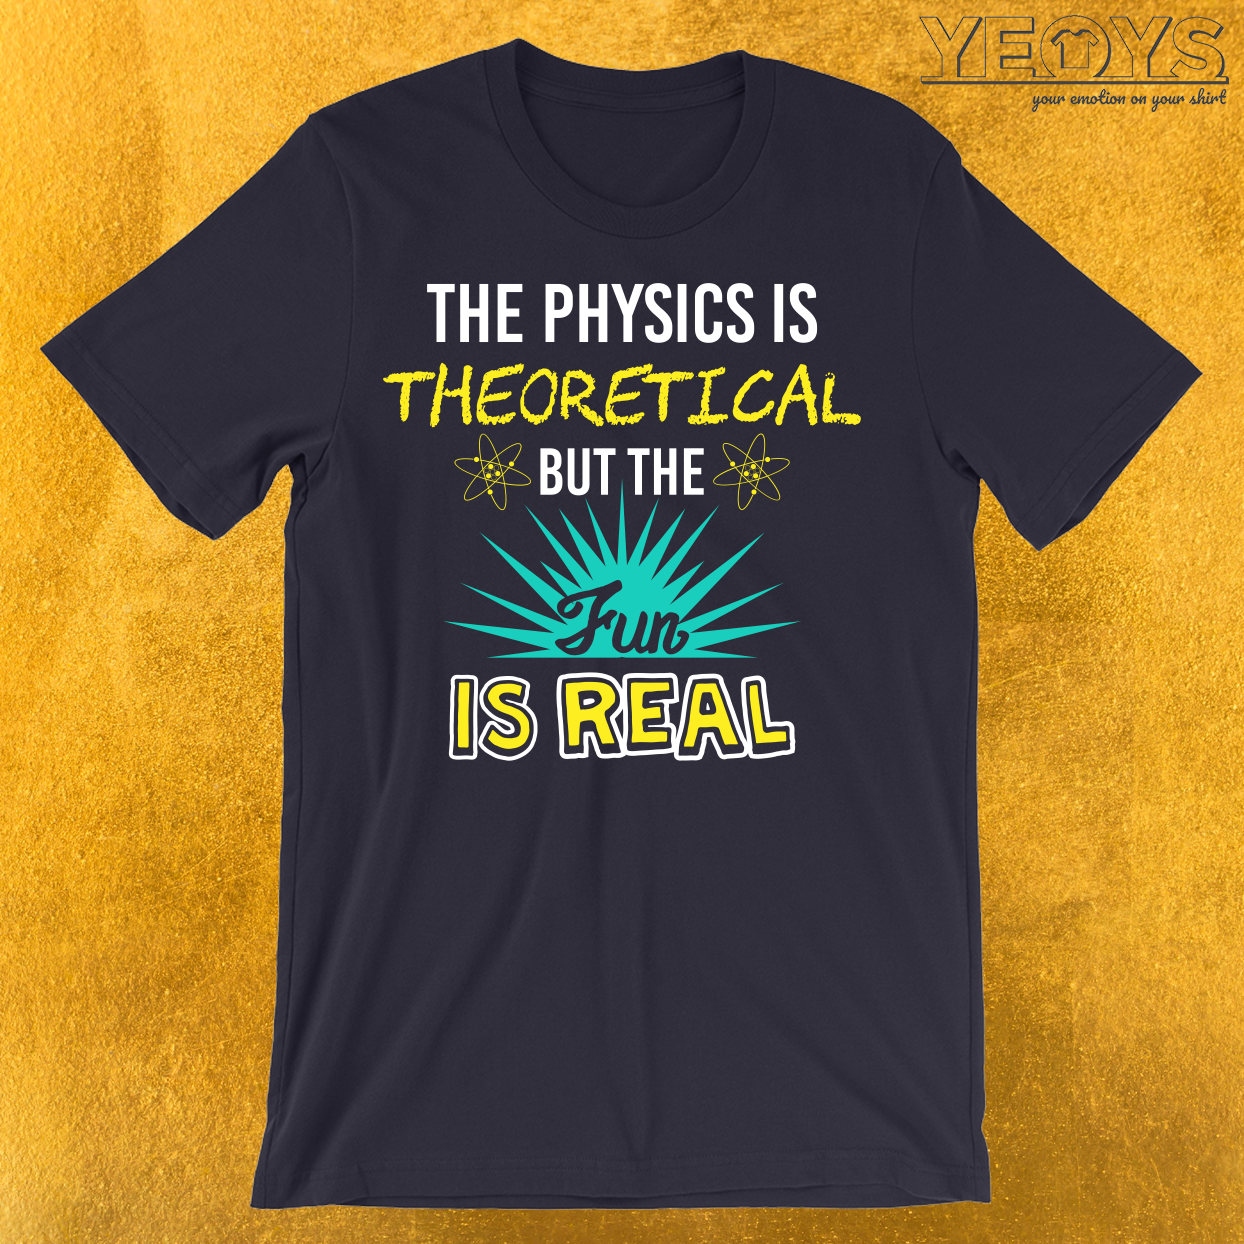 The Physics Is Theoretical But The Fun Is Real T-Shirt